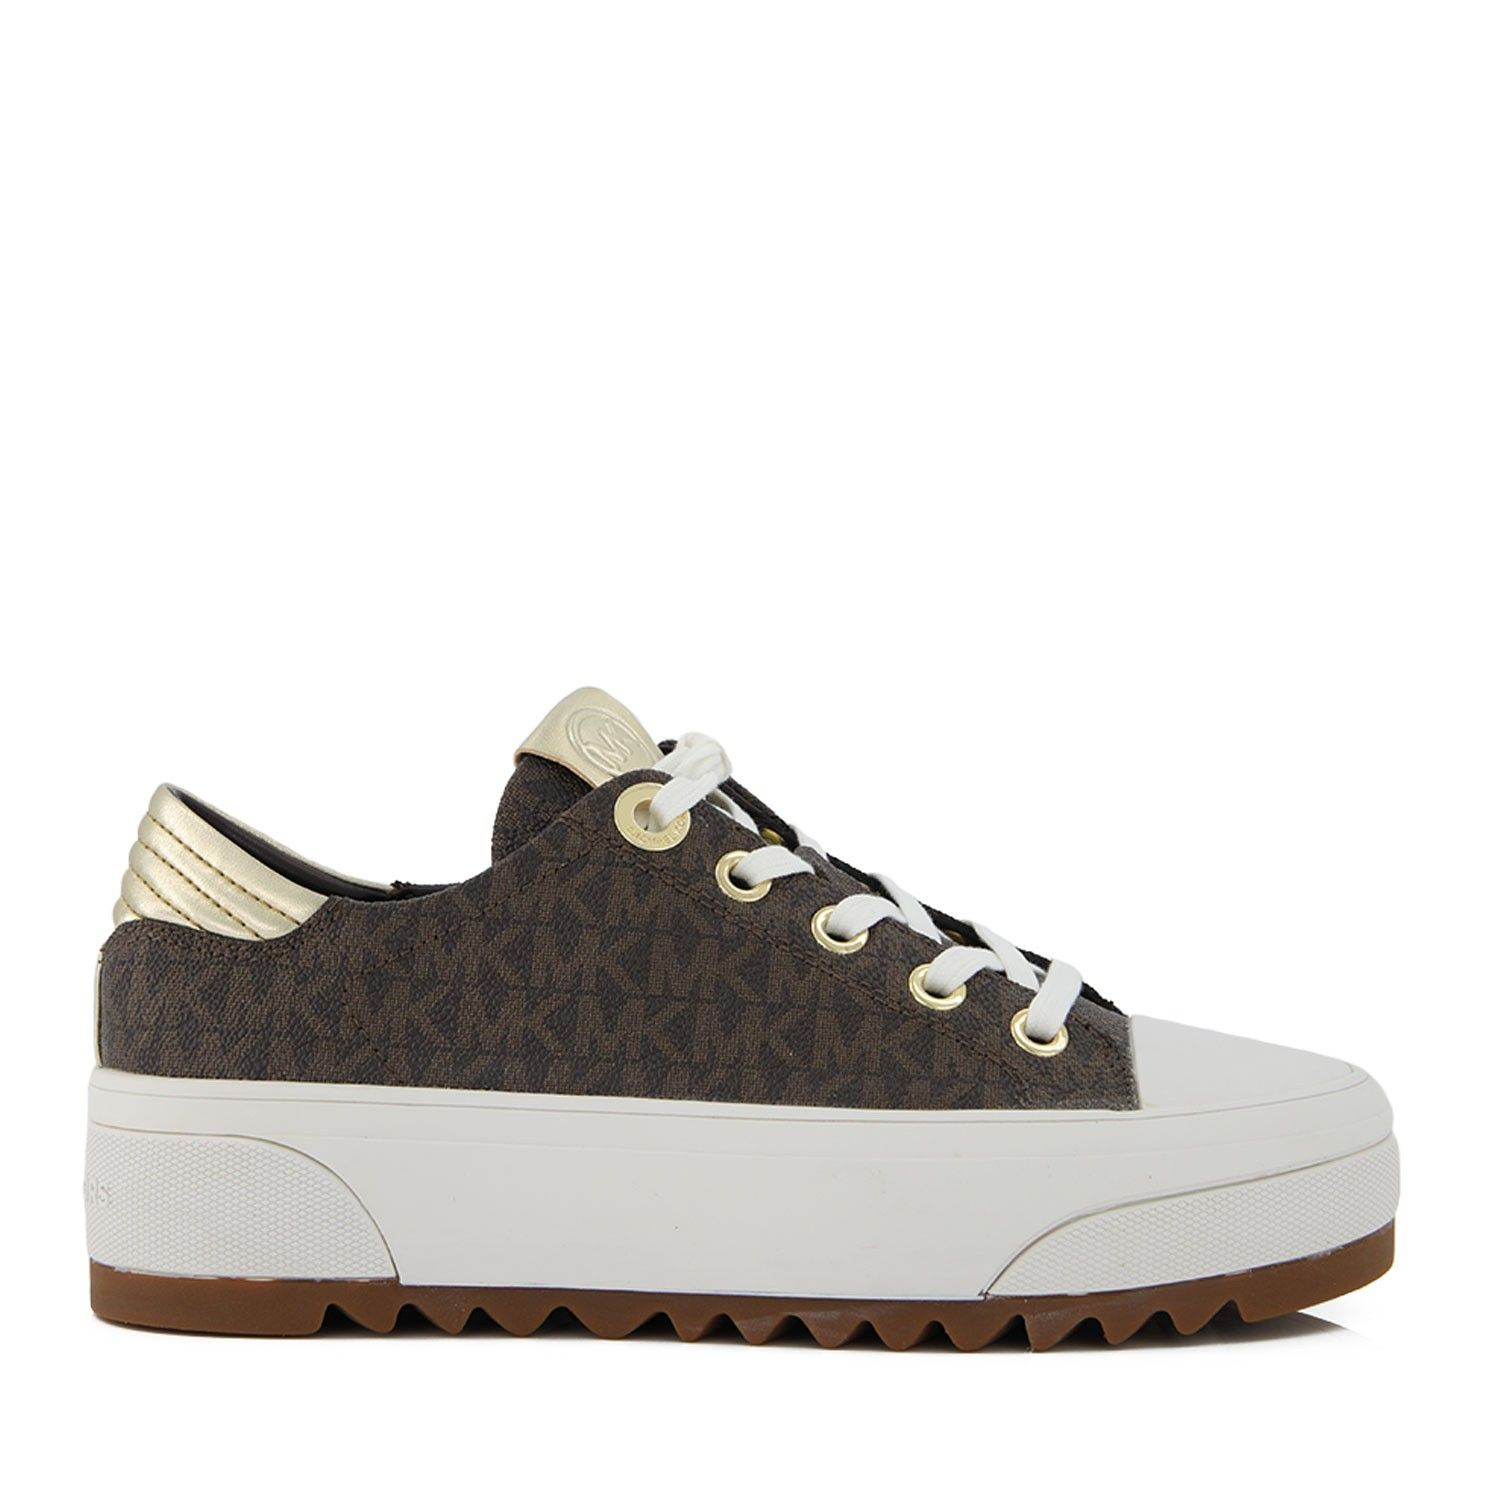 Picture of Michael Kors 43R0KEFS1B womens sneakers brown